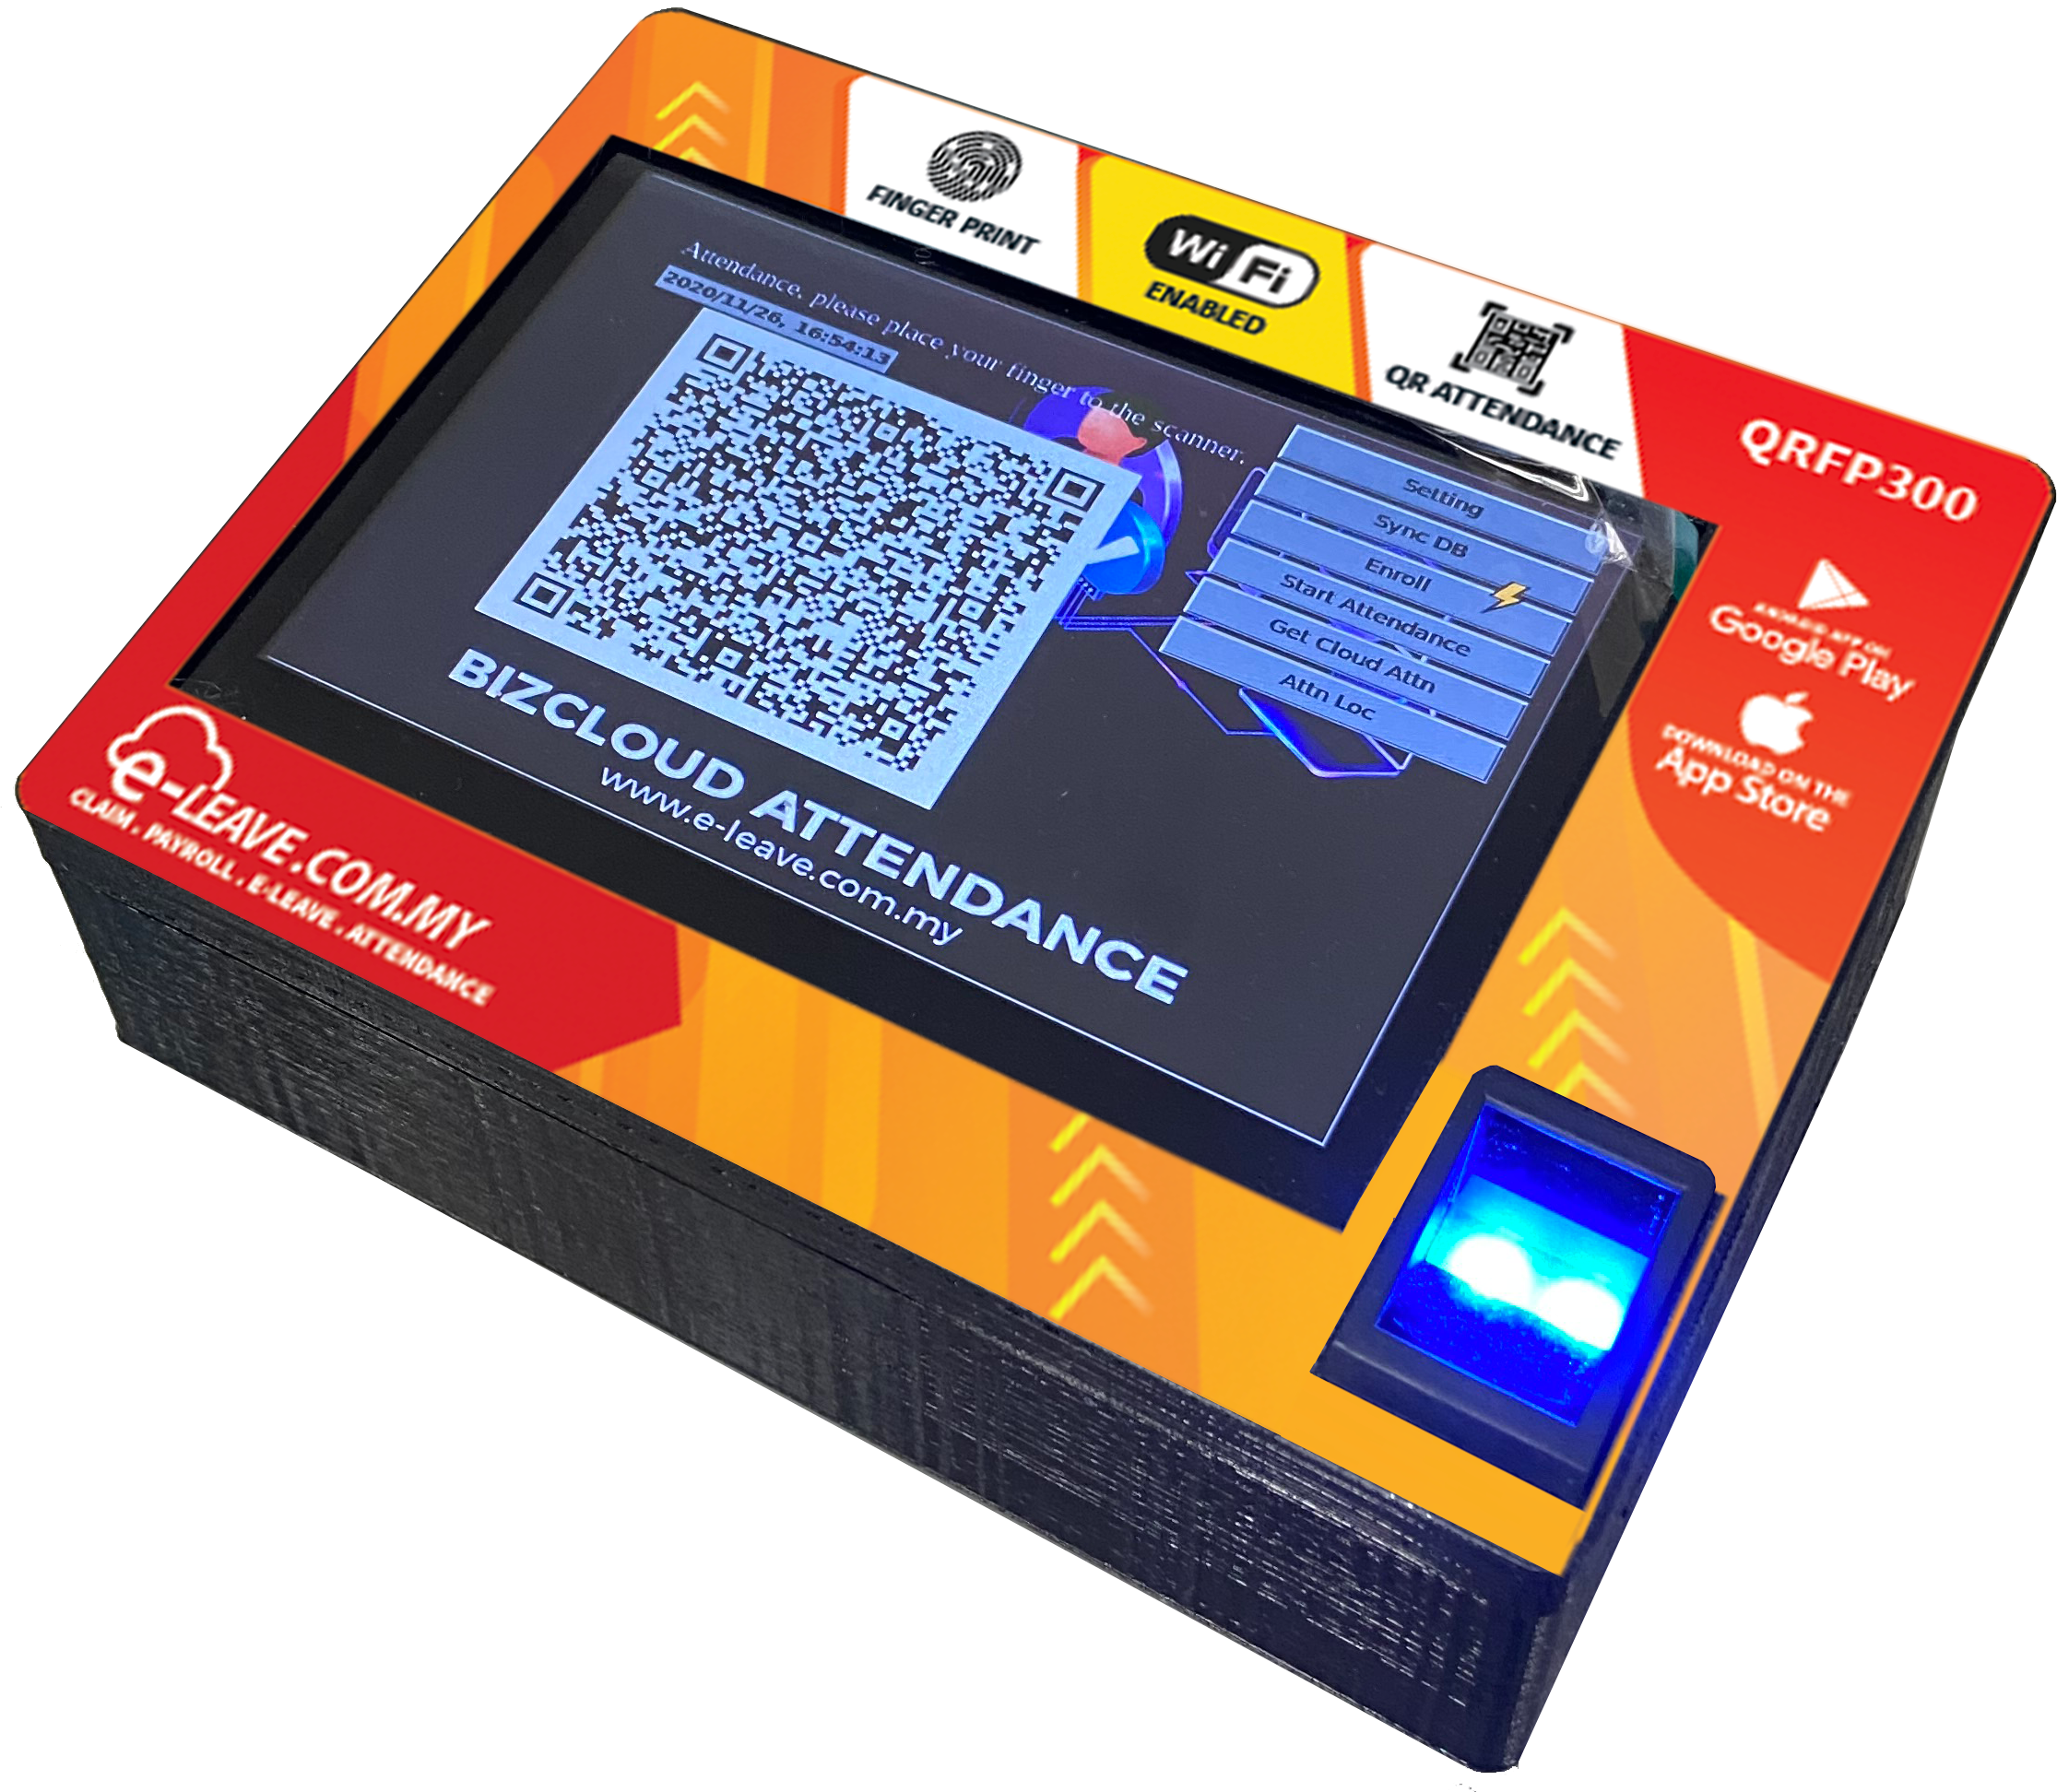 QR-FP300 Attendance System Malaysia